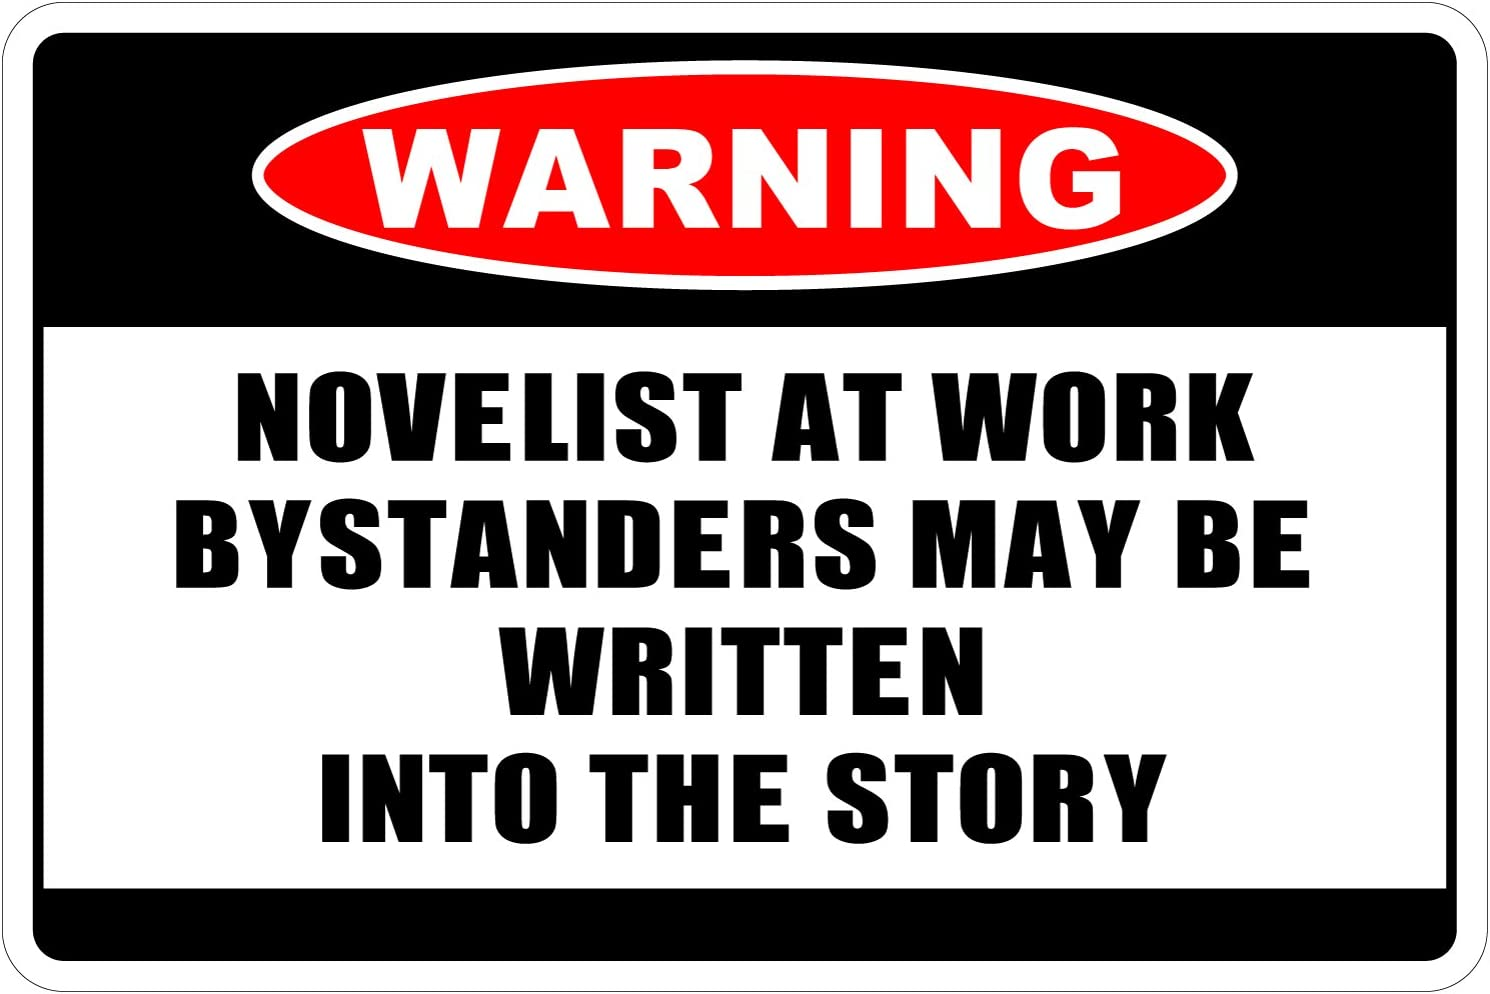 Novelist At Work Novelty Funny Metal Sign 8 in x 12 in